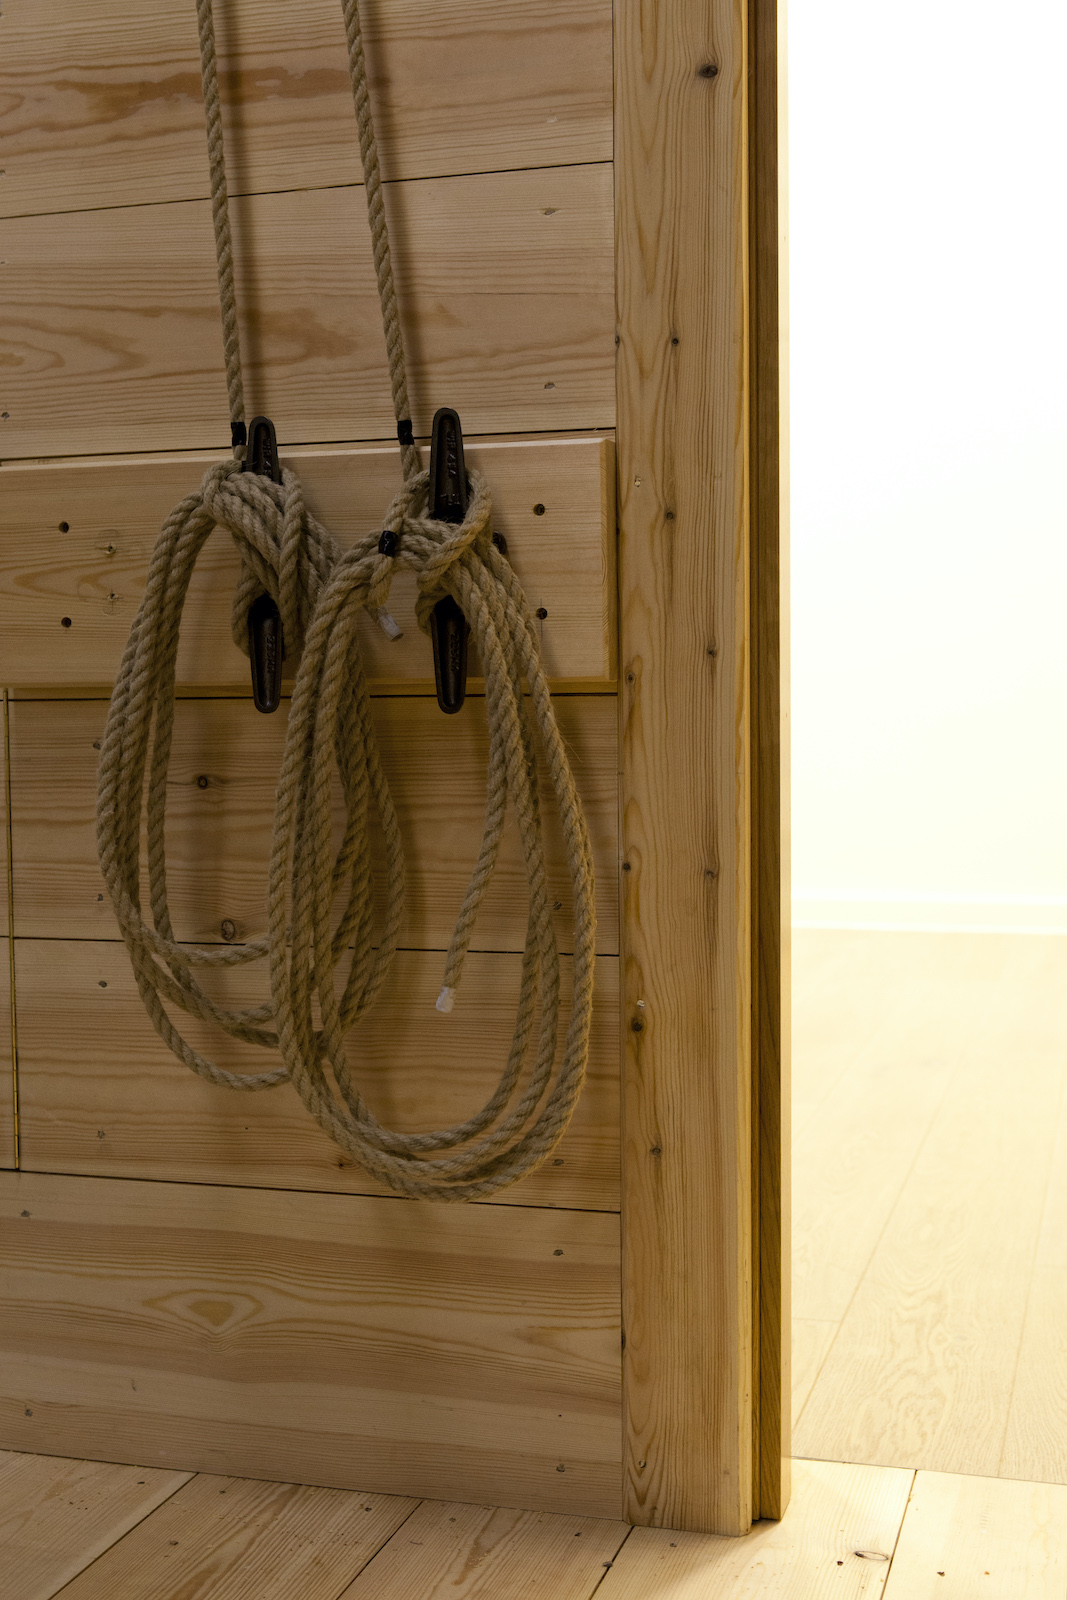 Ropes are tied to handles against a wooden wall